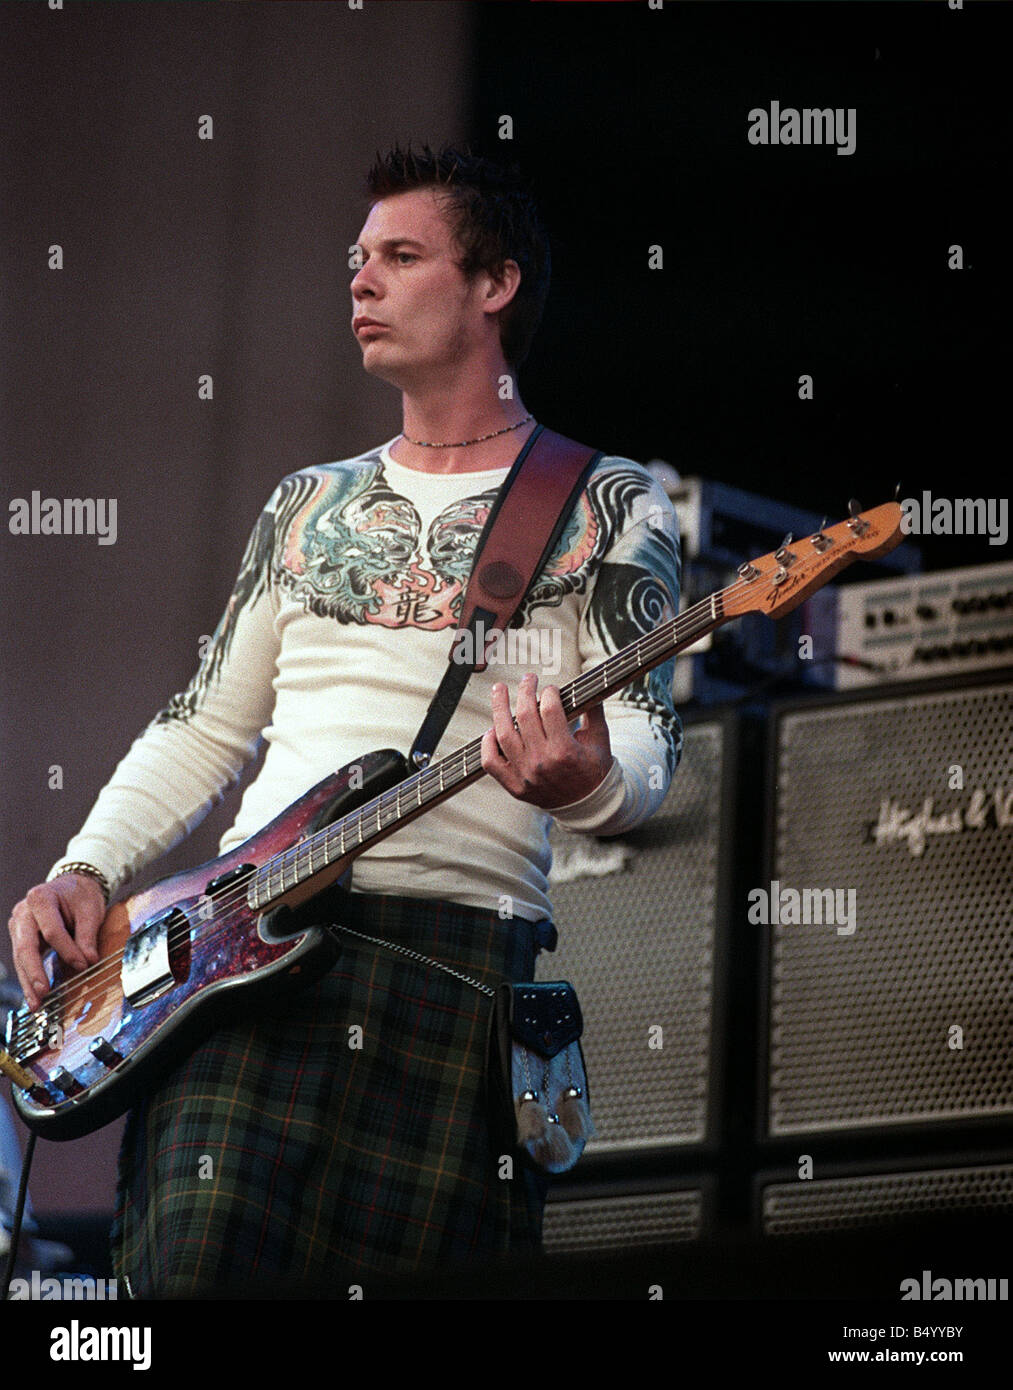 Guitarist from the Stereophinics performing on stage at T in the Park July 1999 wearing a kilt - Stock Image